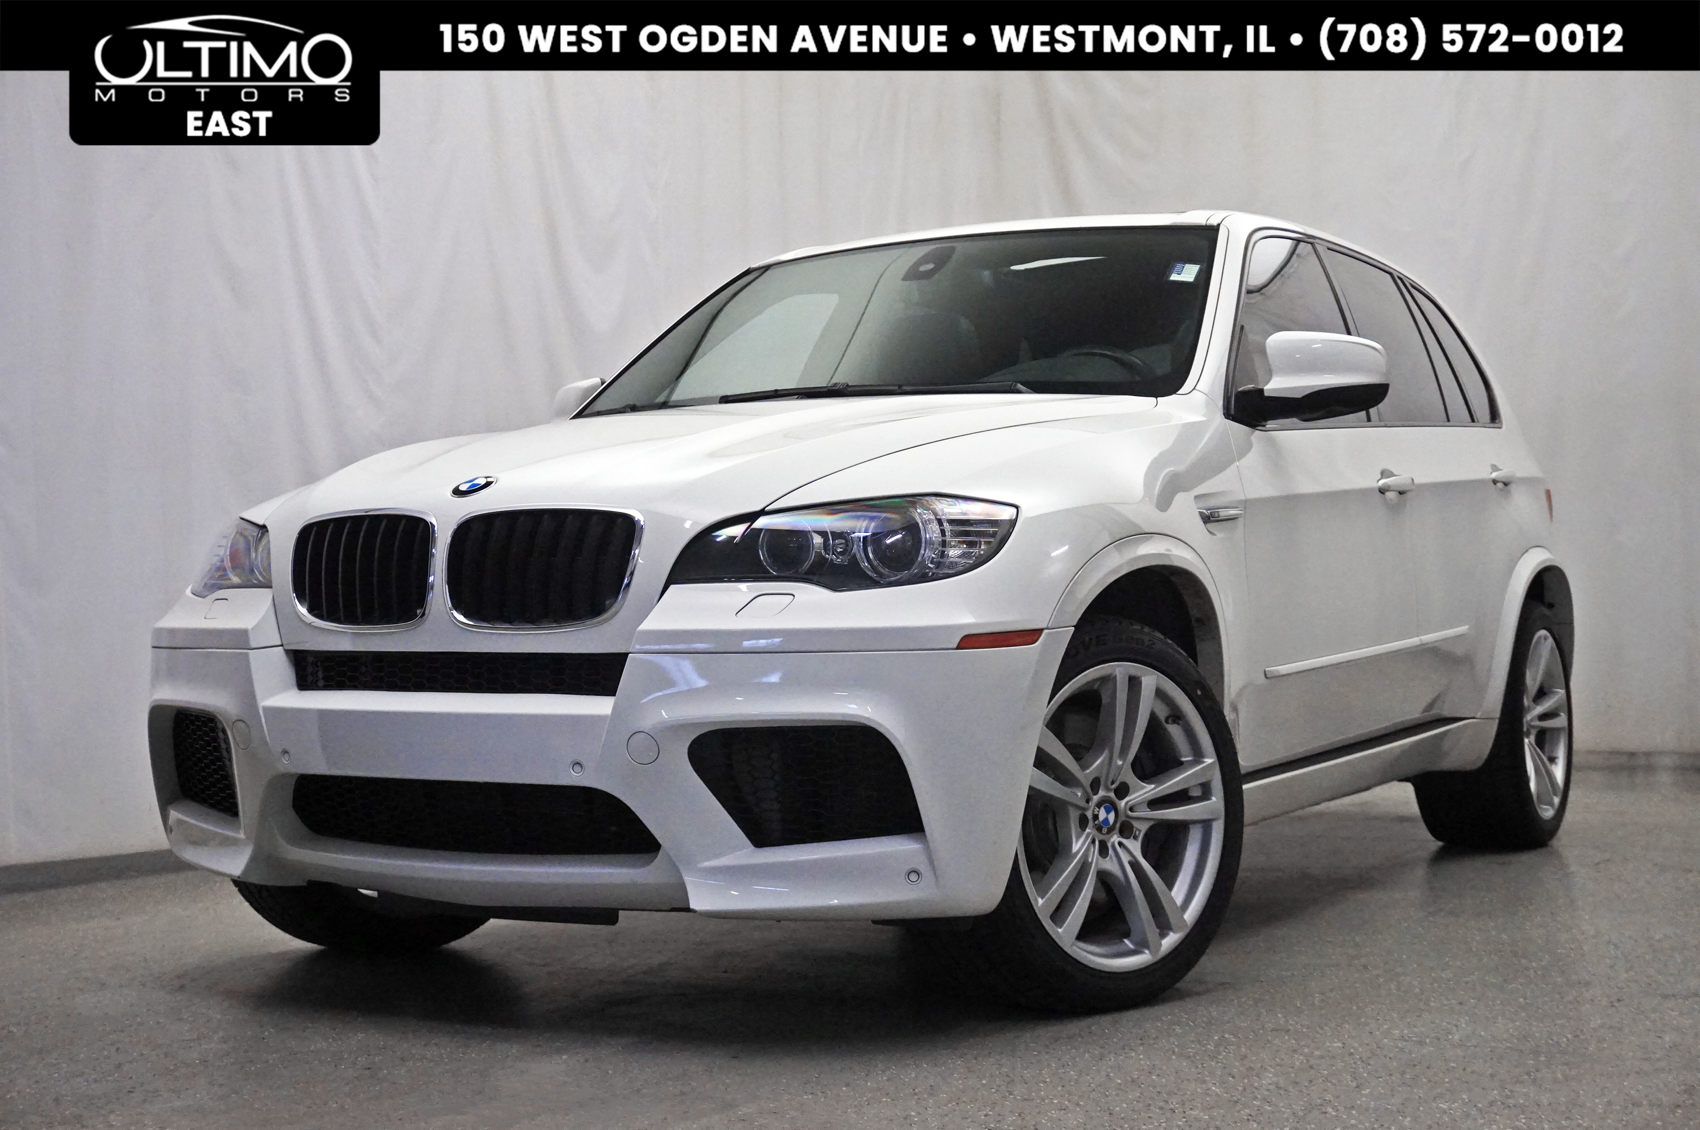 Pre-Owned 2010 BMW X5 M Cold Weather Pkg, Heads Up Display, Rear Camera, Pano Roof, 555 HP